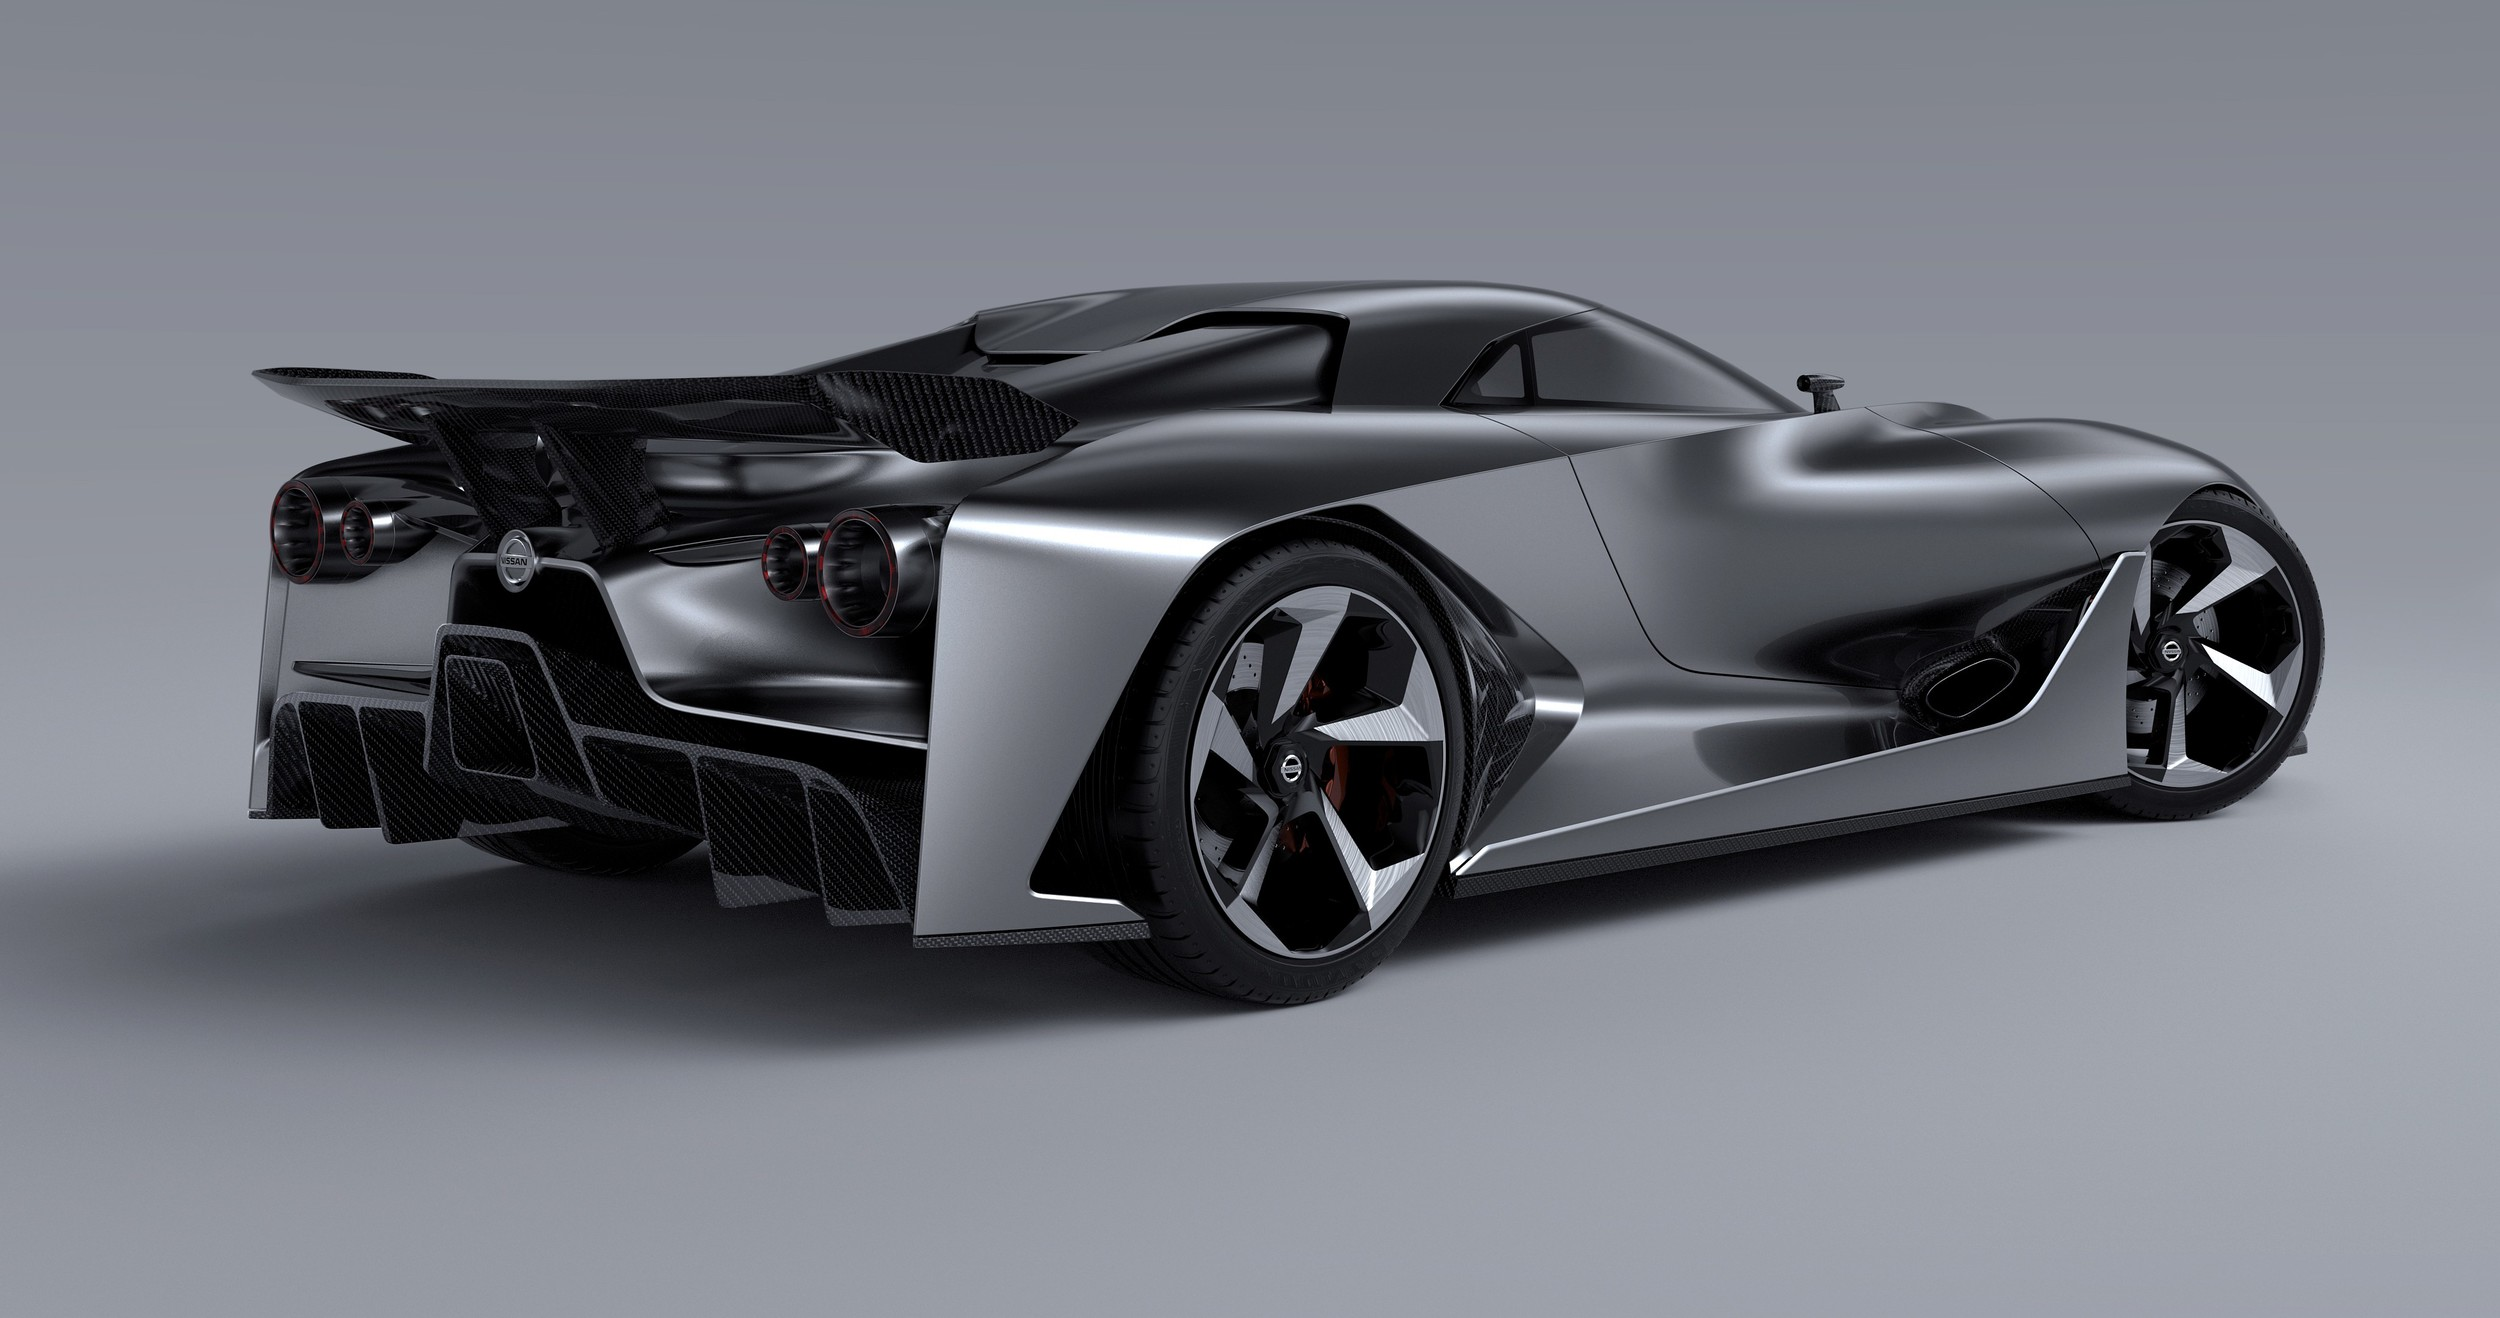 2014_Nissan_Concept_2020_Vision_Gran_Turismo_025_5317.jpg